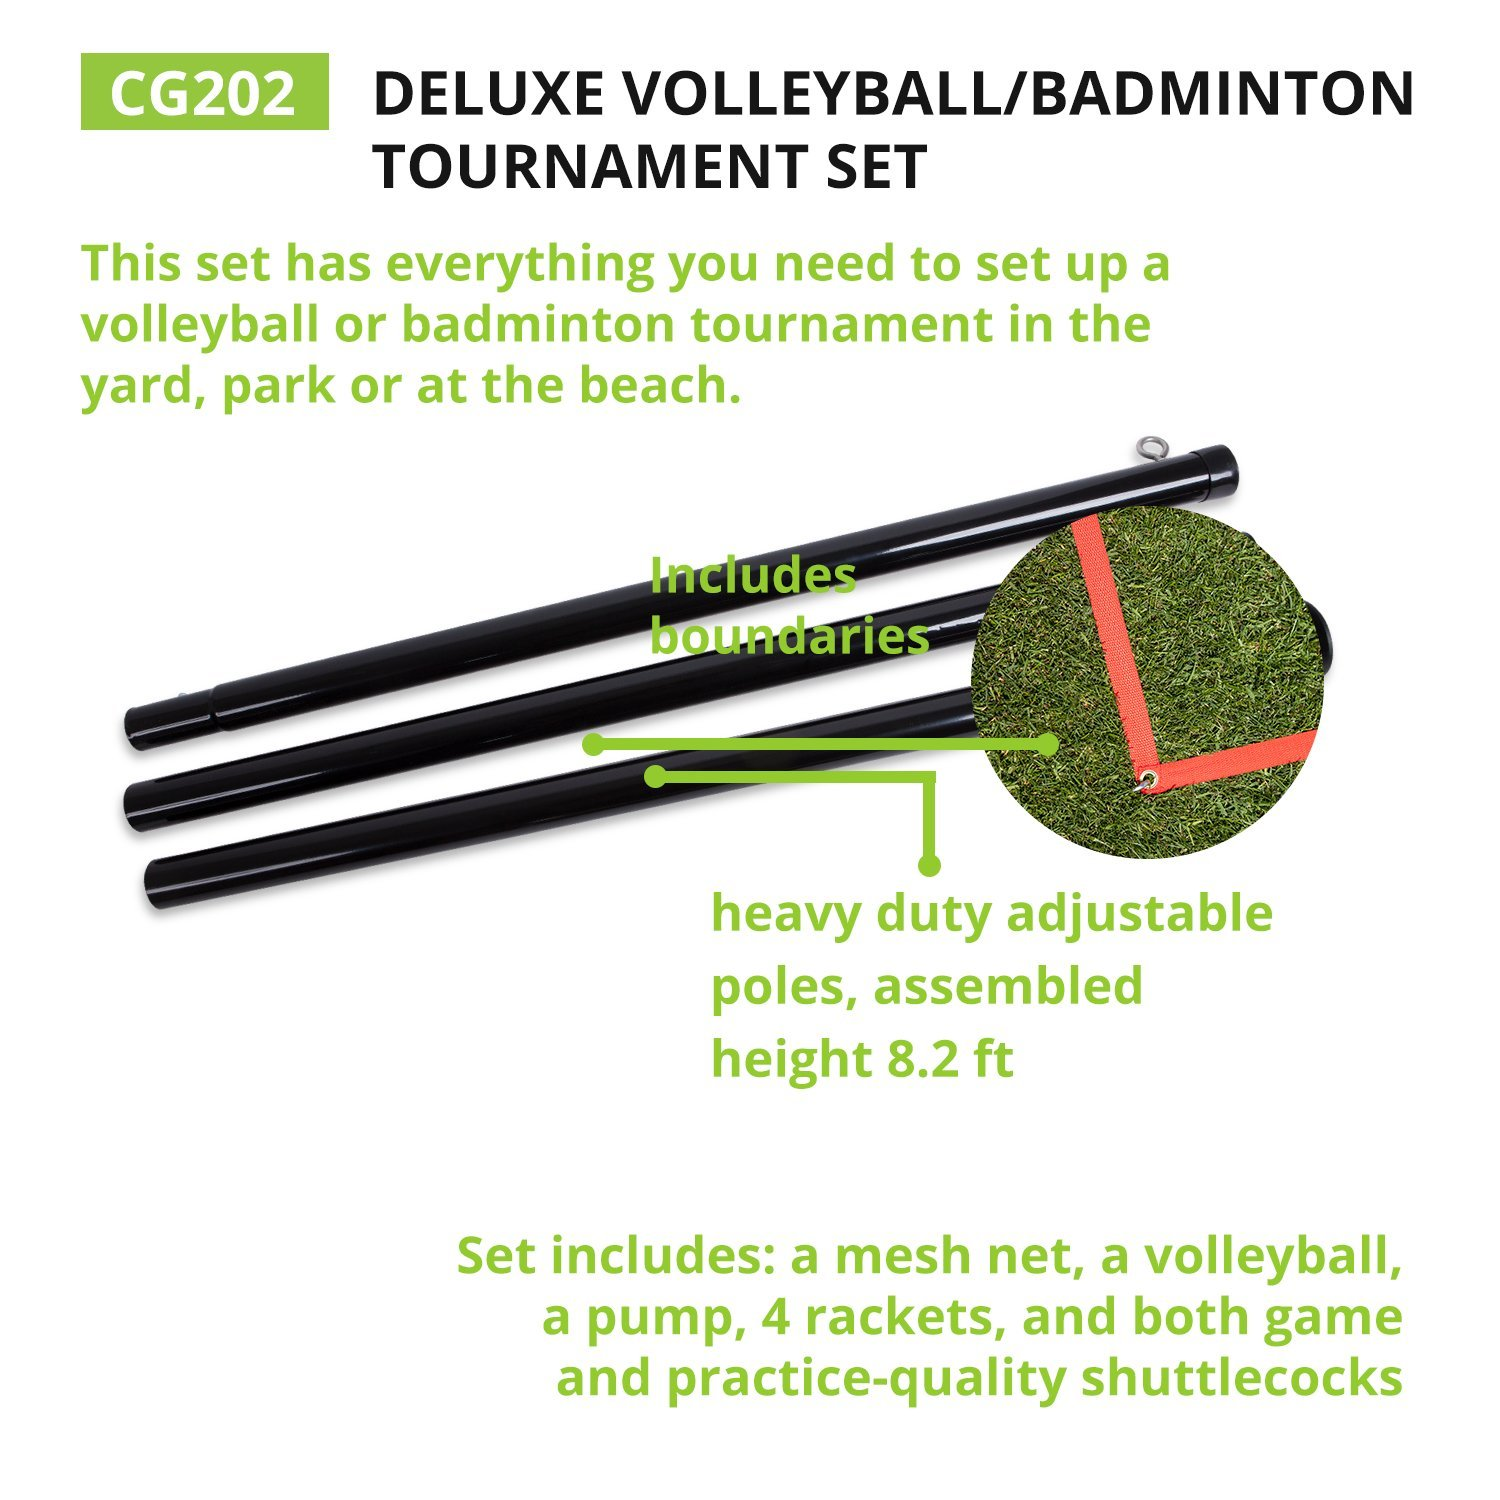 Champion Sports Volleyball & Badminton Set: Net, Poles, Ball, Rackets & Shuttlecocks - Portable Equipment for Outdoor, Lawn, Beach & Tournament Games by Champion Sports (Image #3)